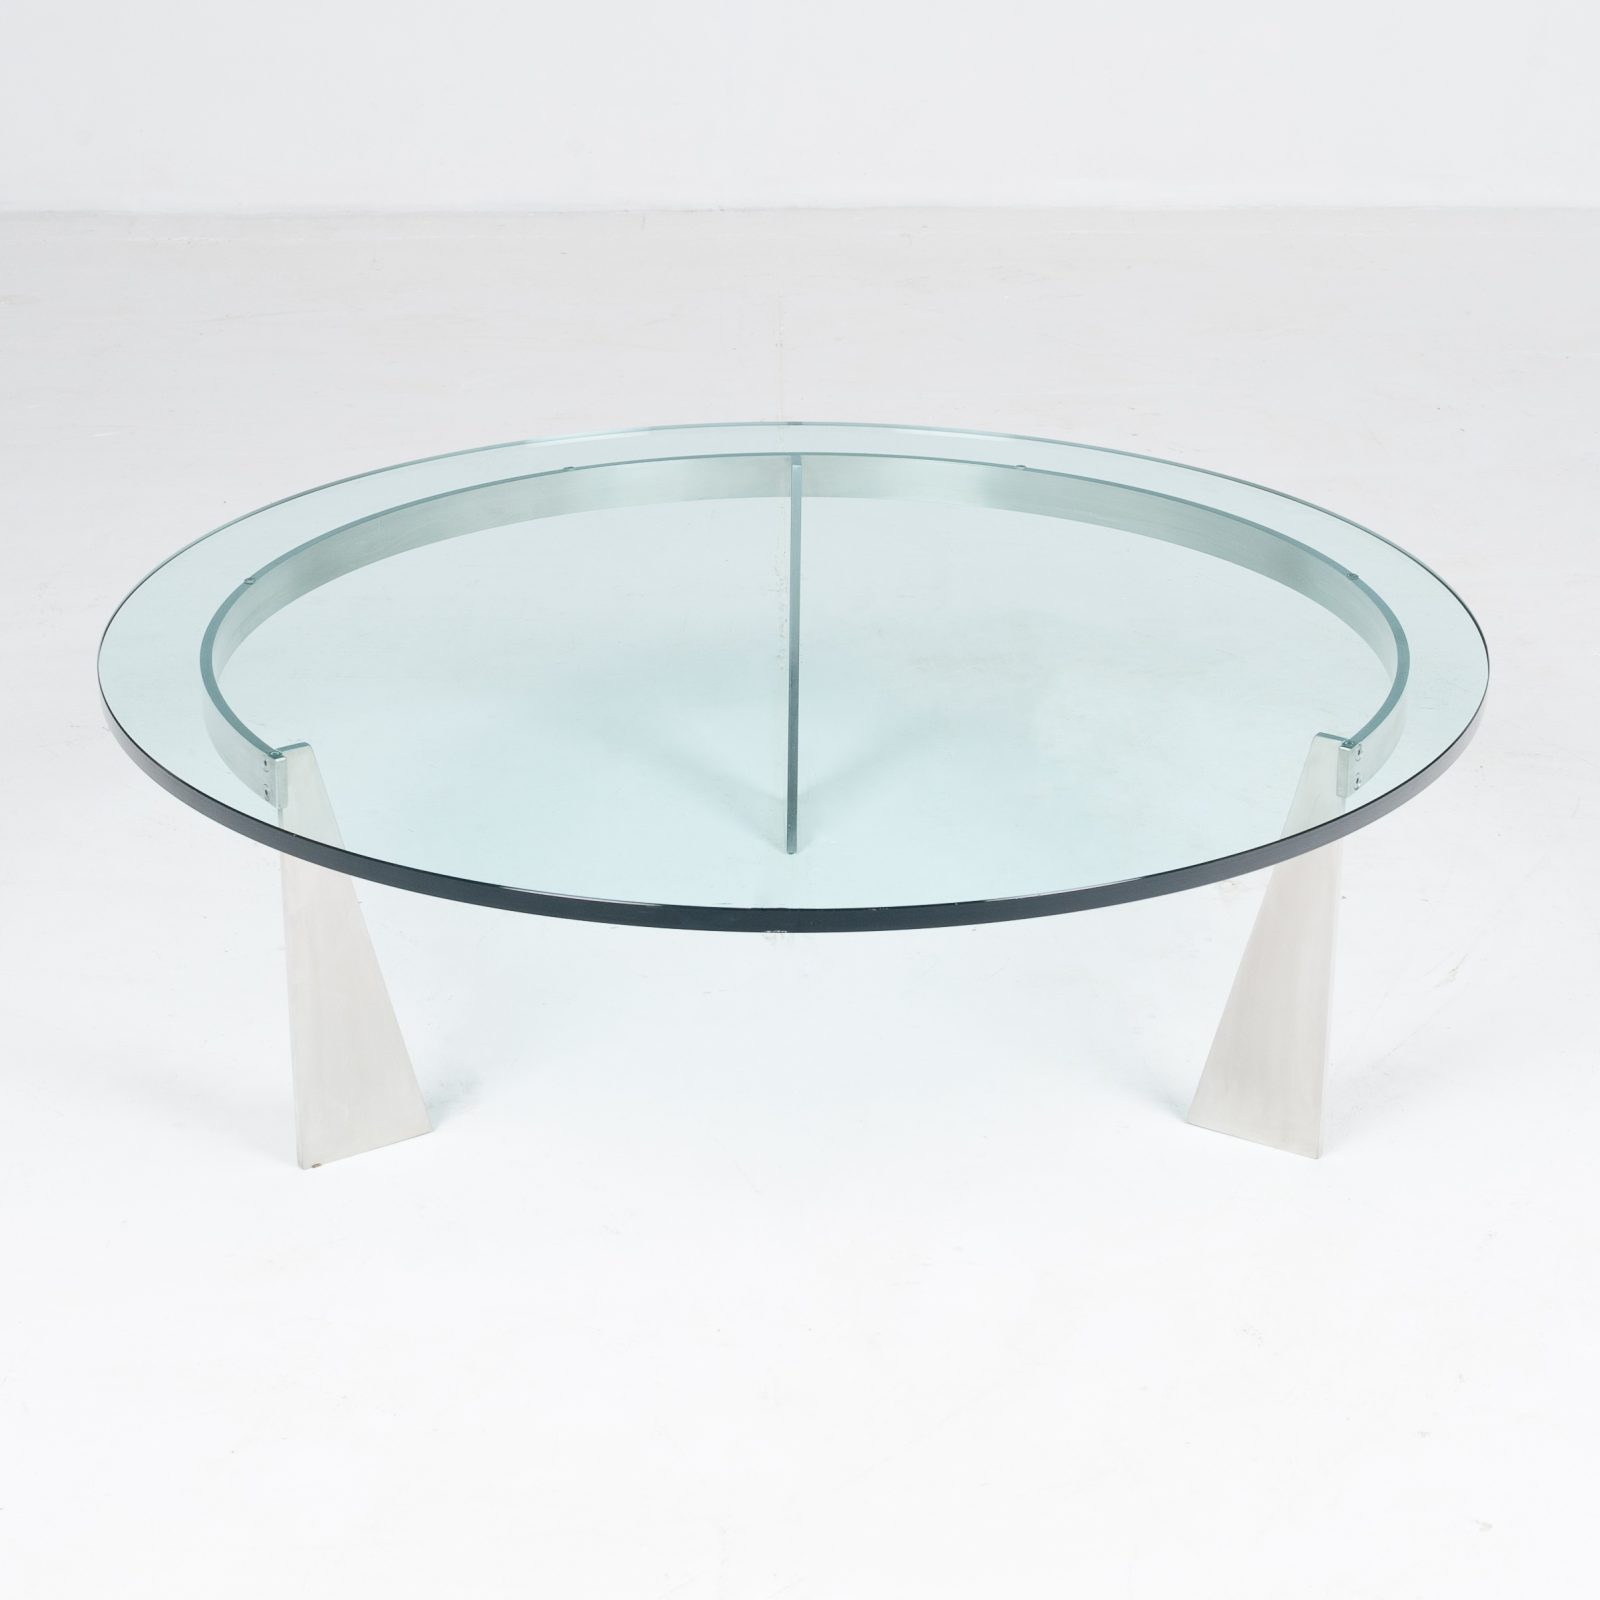 Round Coffee Table By Metaform, 1980s, The Netherlands 2